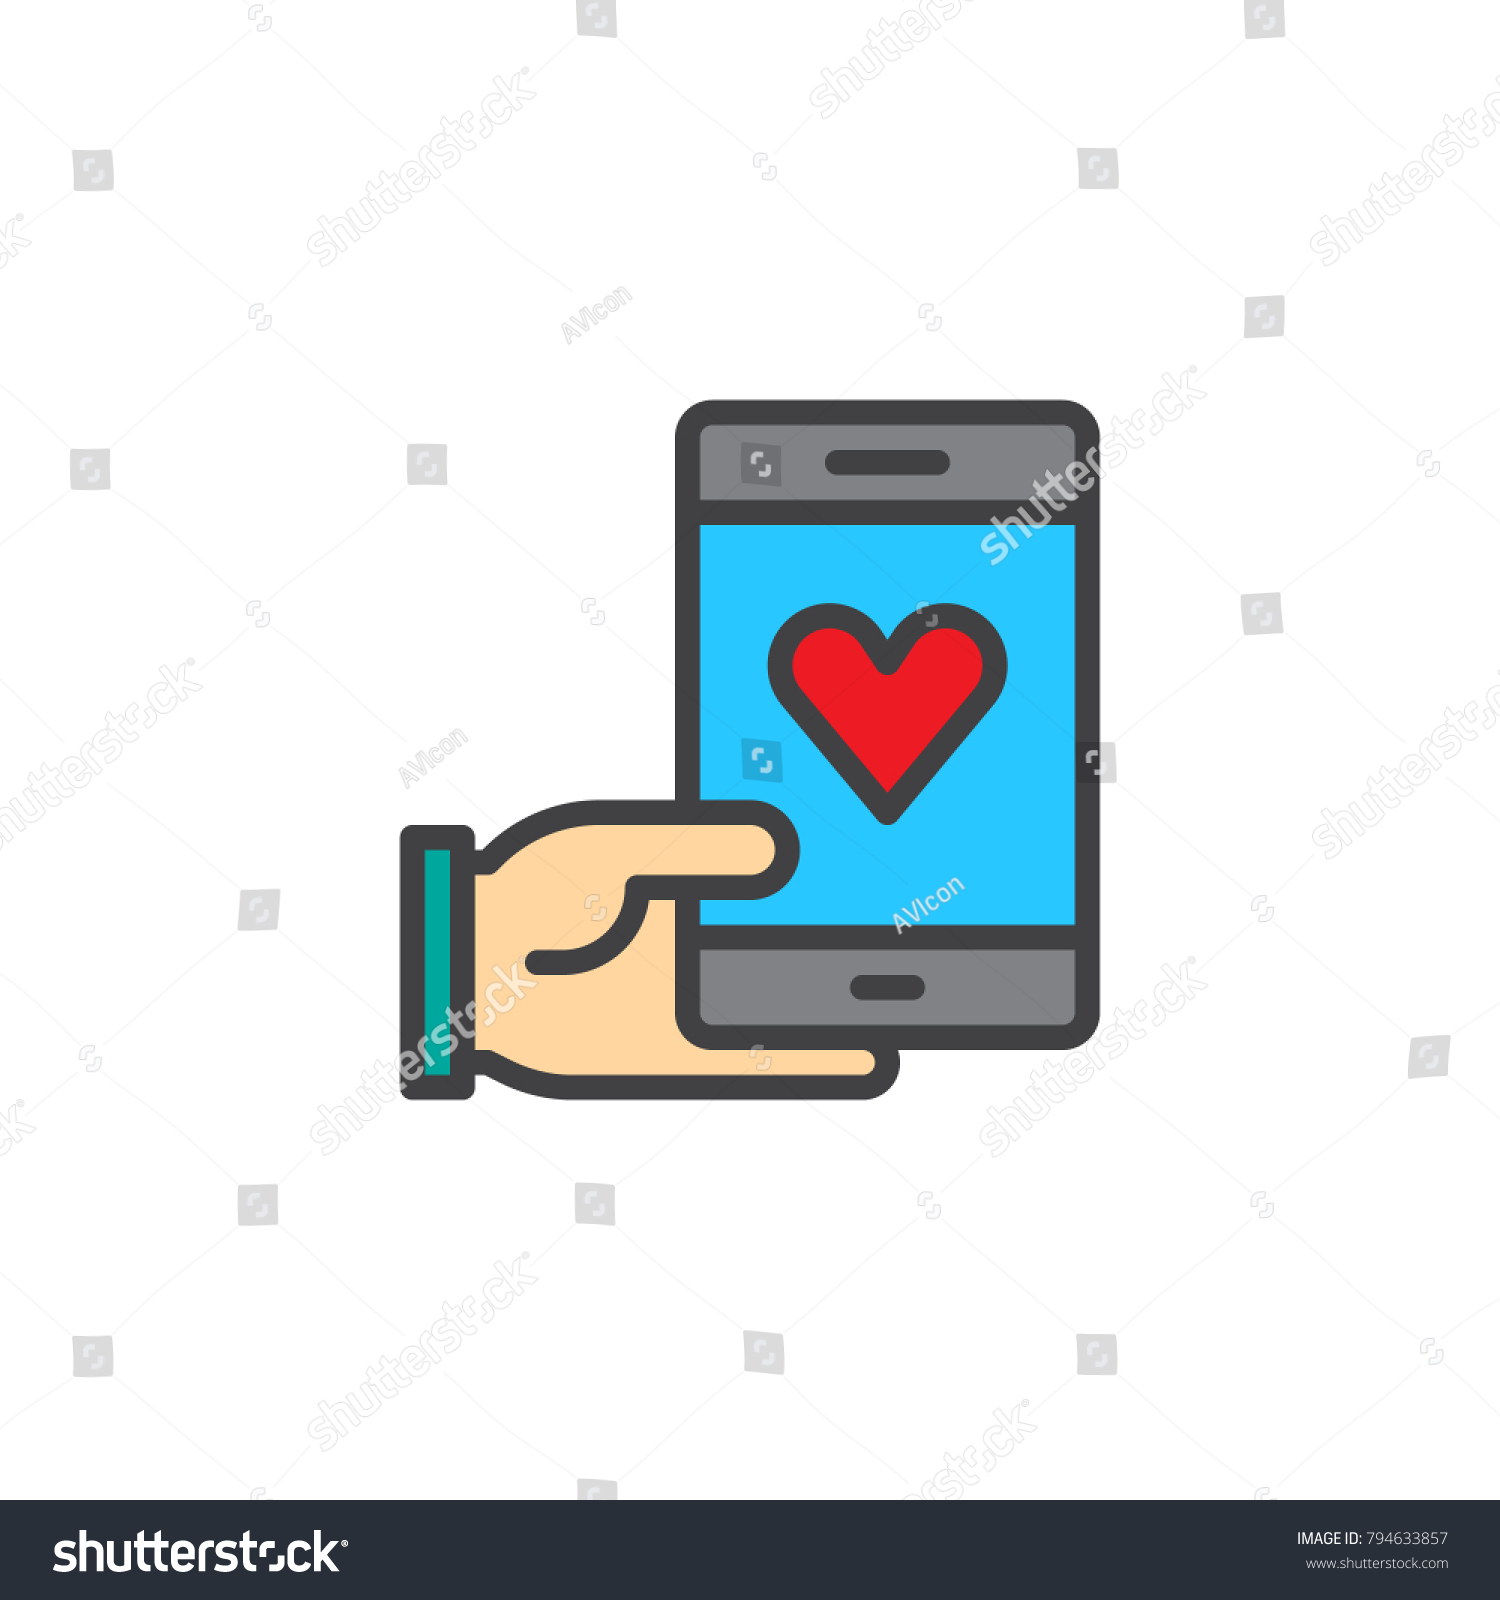 Hand Holding Phone Heart Filled Outline Stock Vector Royalty Free